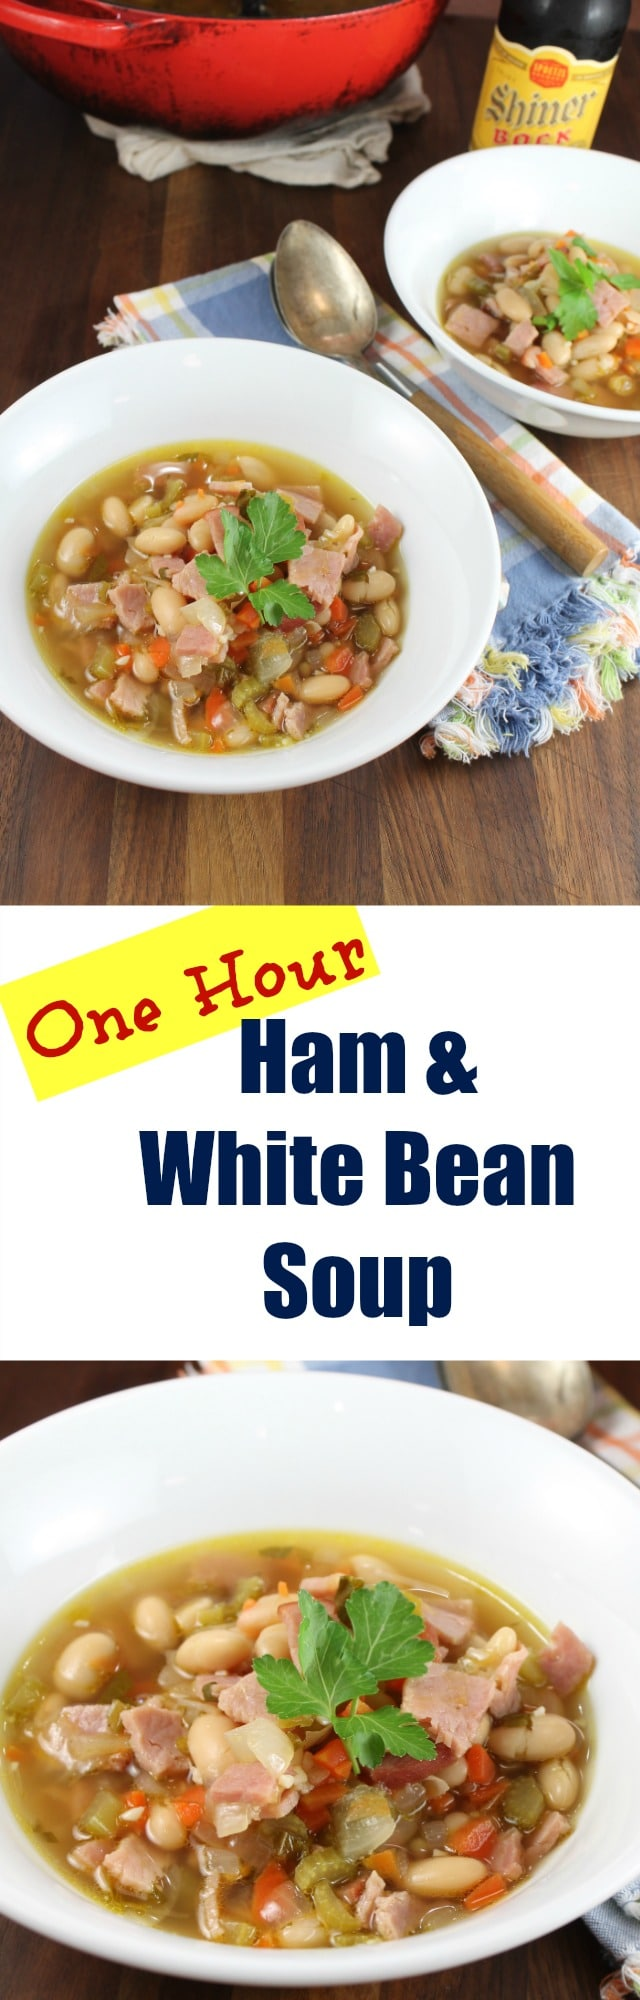 One Hour Ham and White Bean Soup is a filling and delicious dinner that the whole family will enjoy! Recipe from MissintheKitchen.com #ProgressiveEats